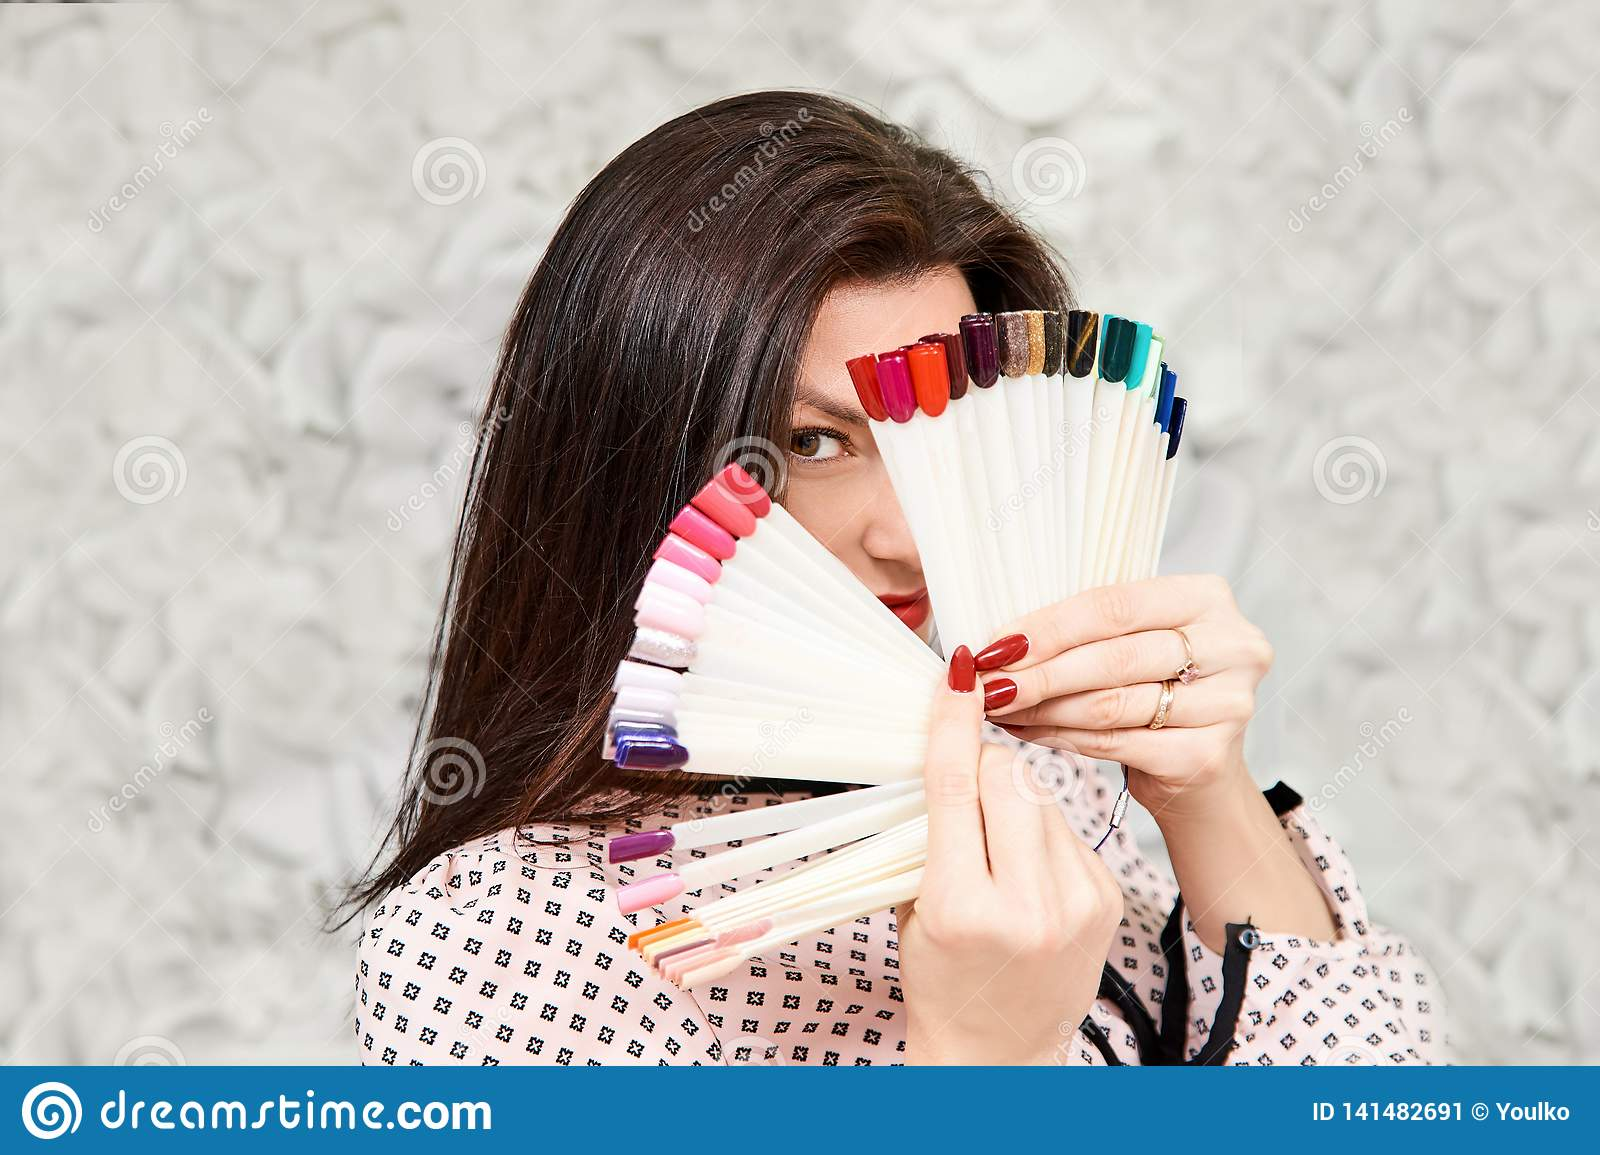 A girl with a beautiful manicure, holding manicure samples, covering her face. Brunette